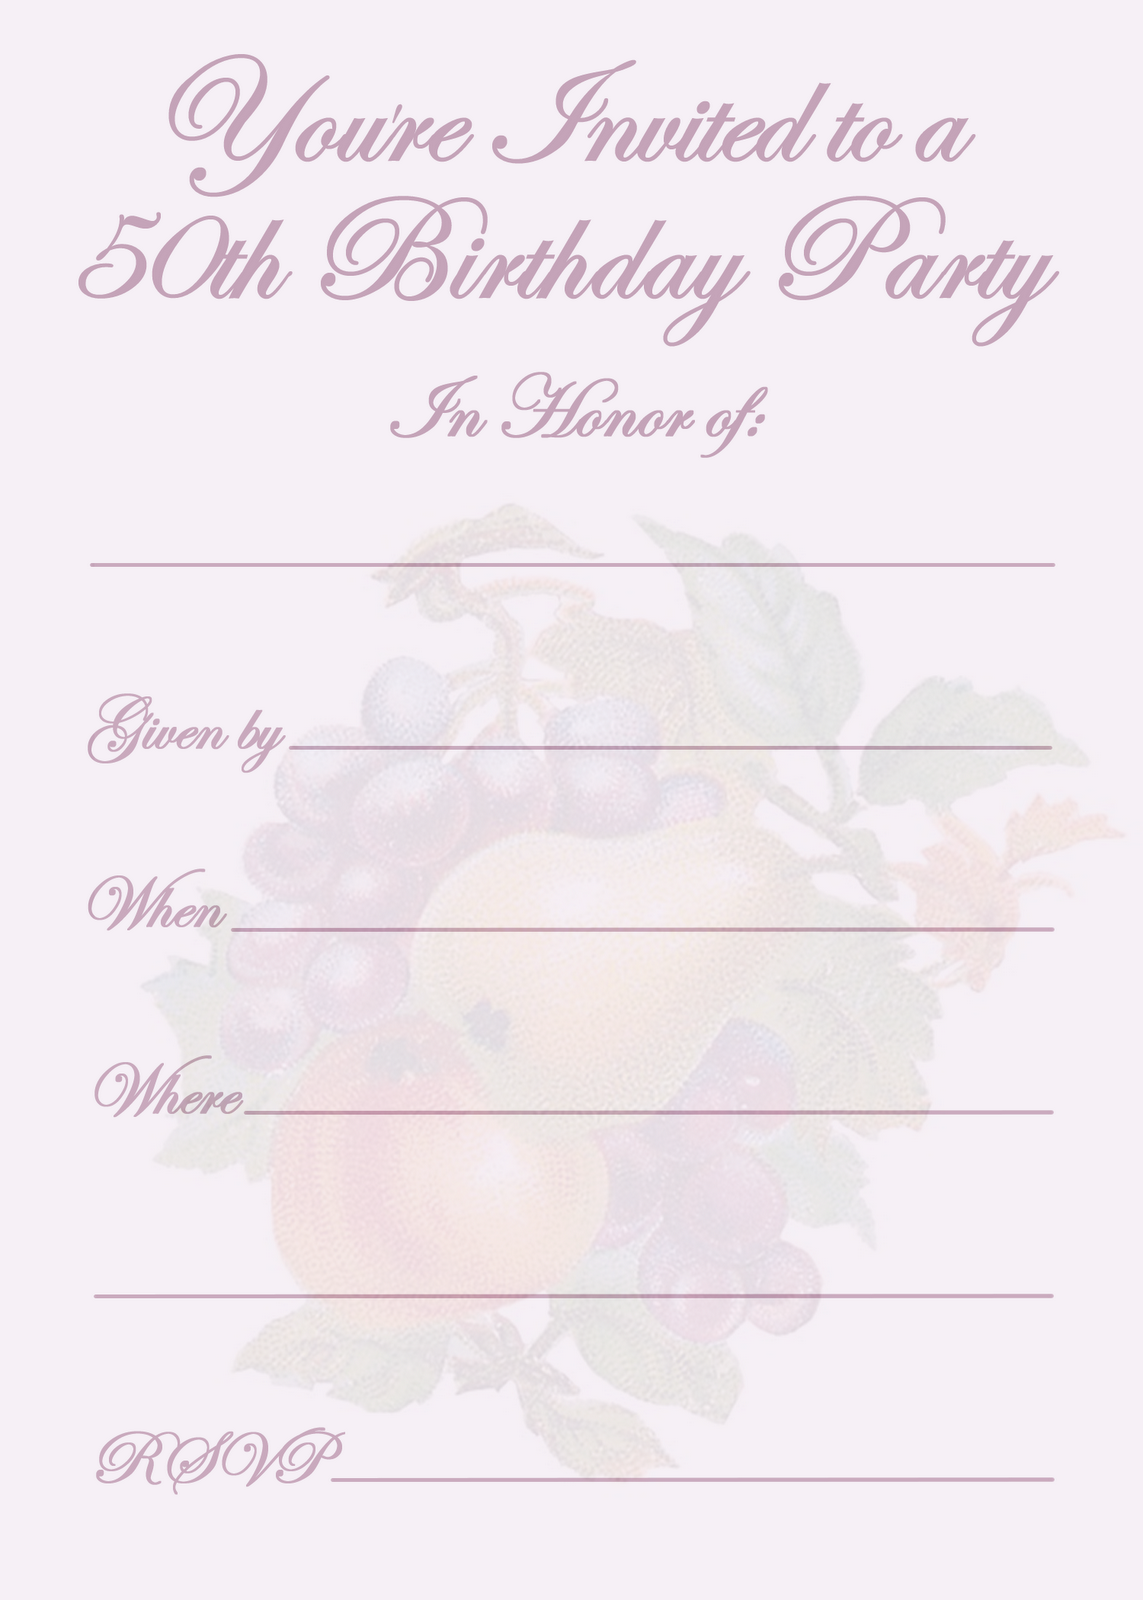 Critical image with free printable 50th birthday invitations